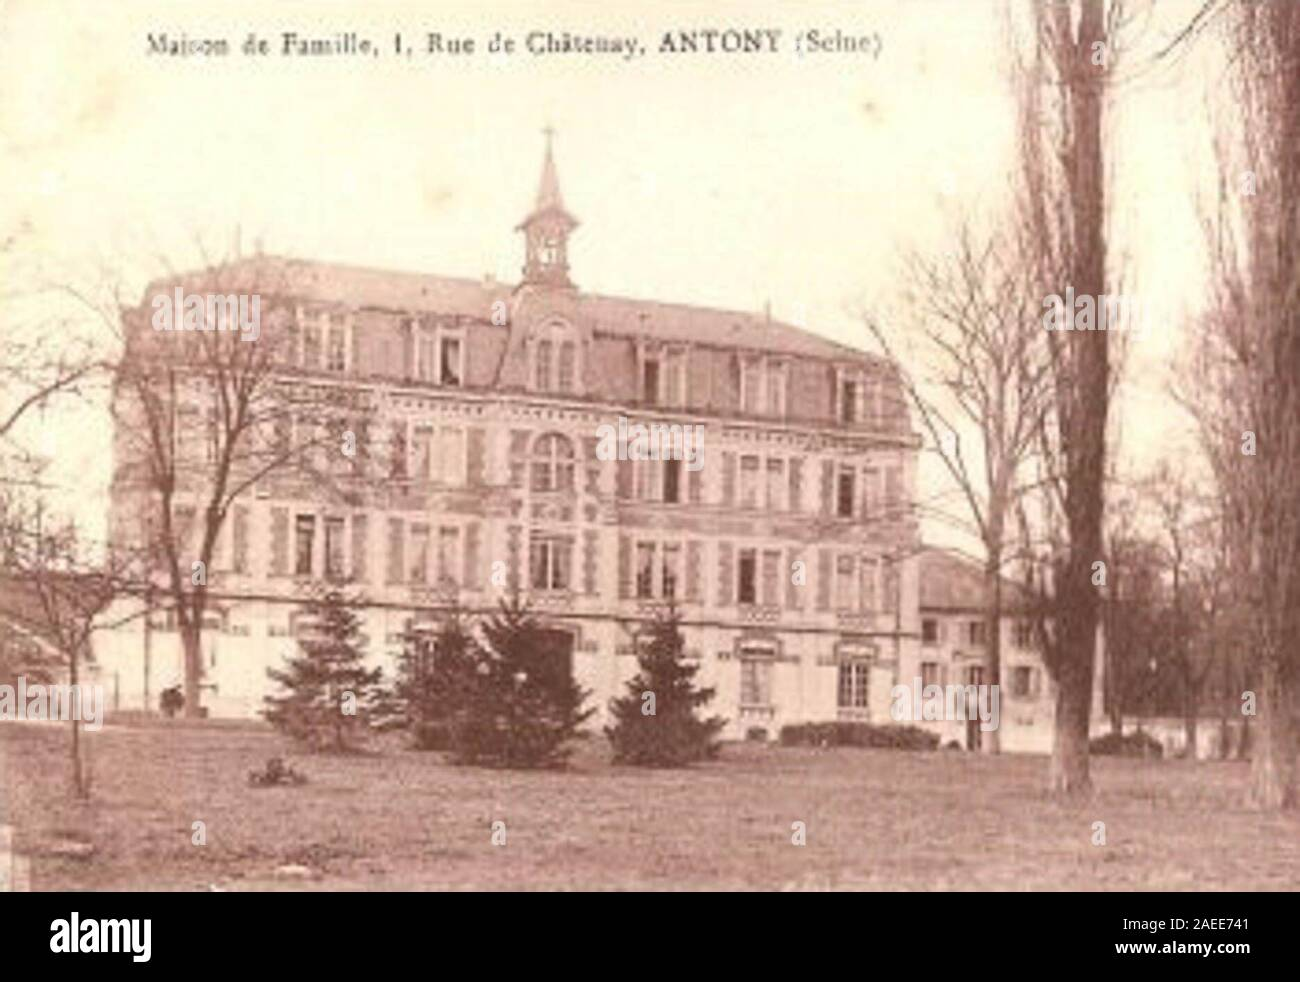 The Chénier property, transformed into a boarding house after the expulsion of Marianists in 1905. Stock Photo